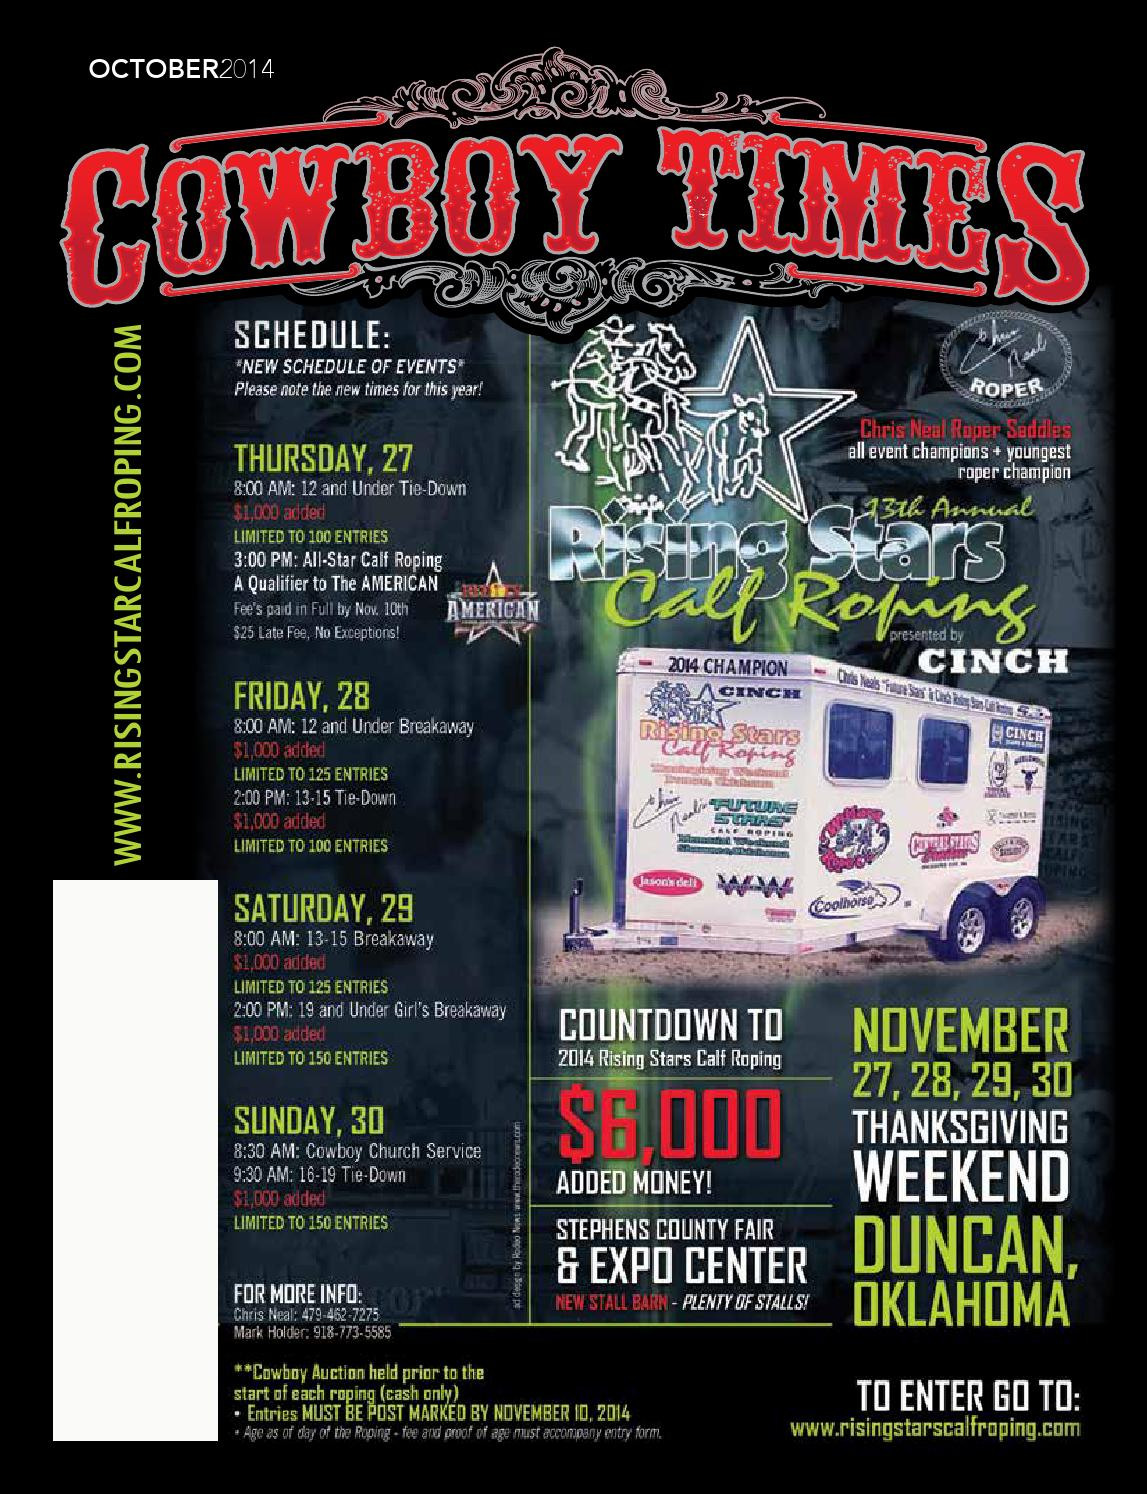 cowboy times by ranch house designs issuu